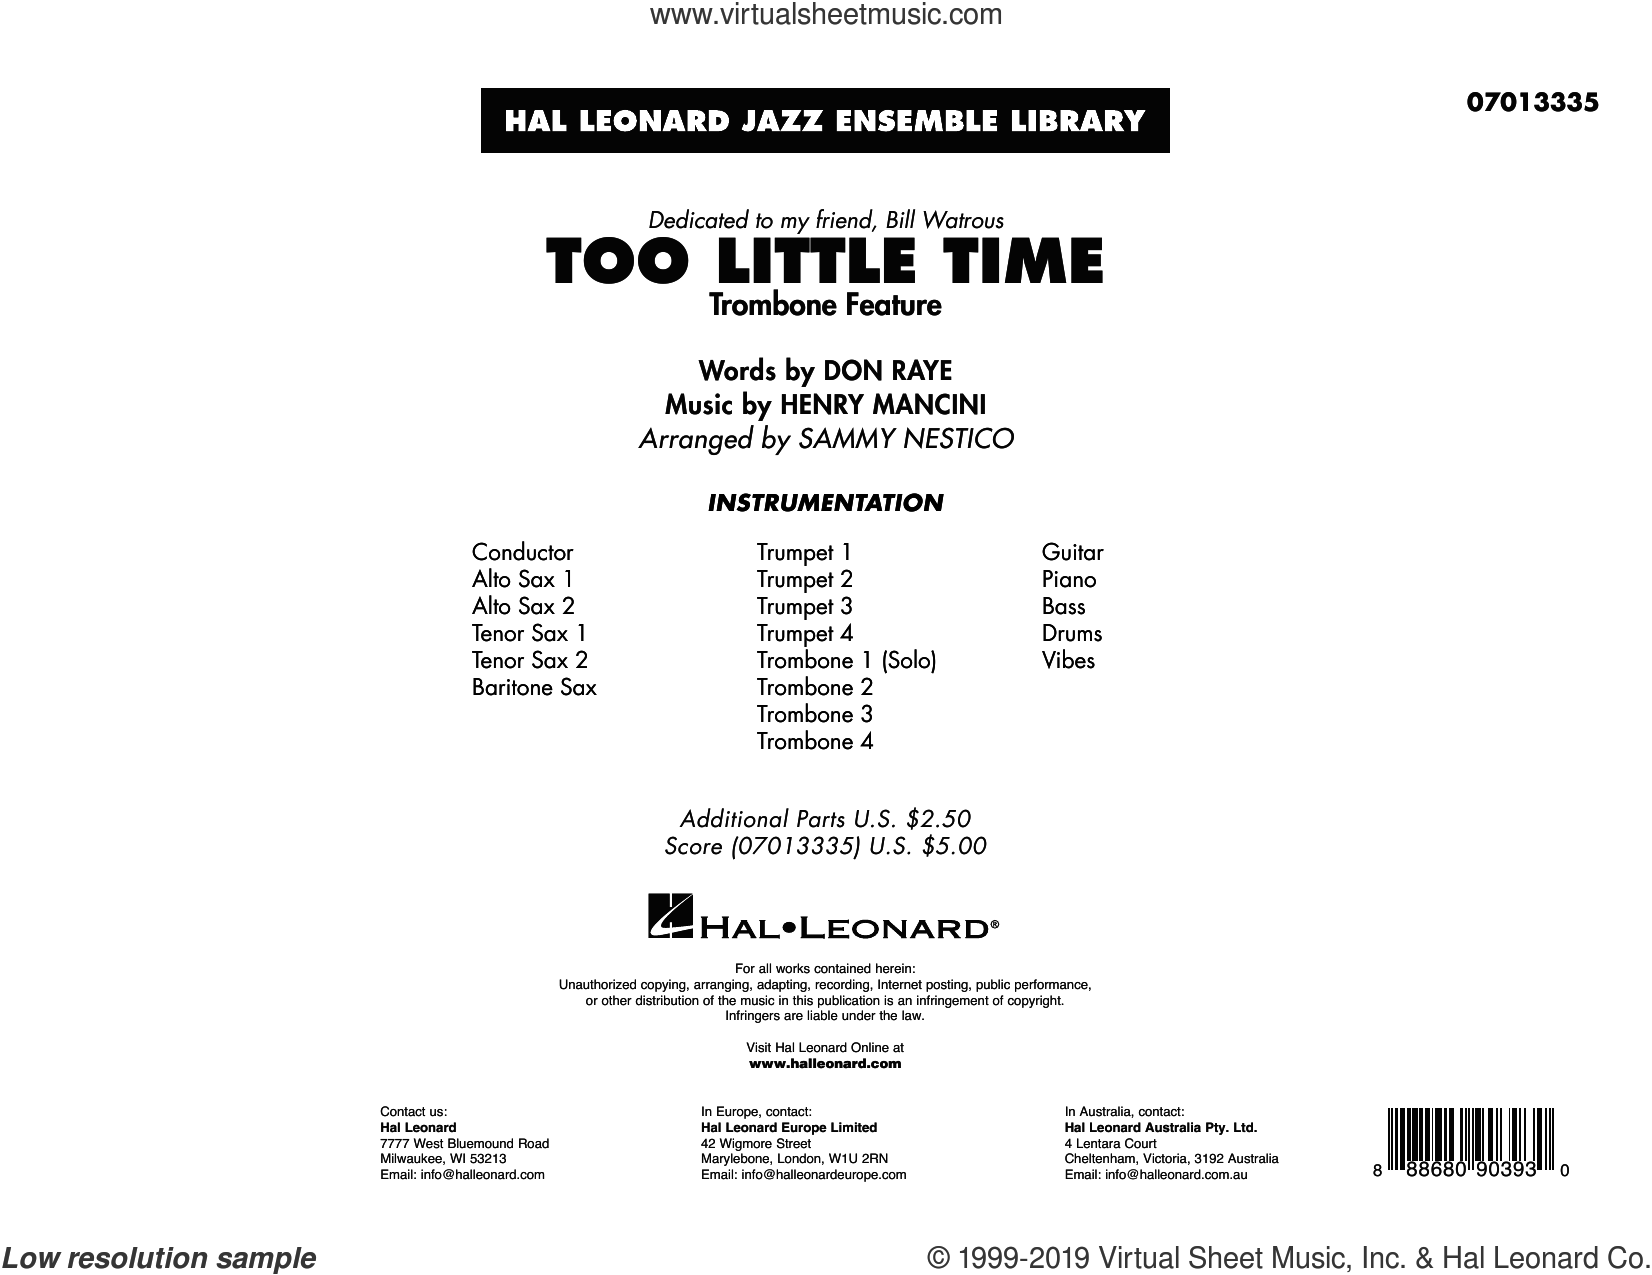 Too Little Time (arr. Sammy Nestico) (COMPLETE) sheet music for jazz band by Henry Mancini, Bill Watrous, Don Raye and Sammy Nestico, intermediate skill level